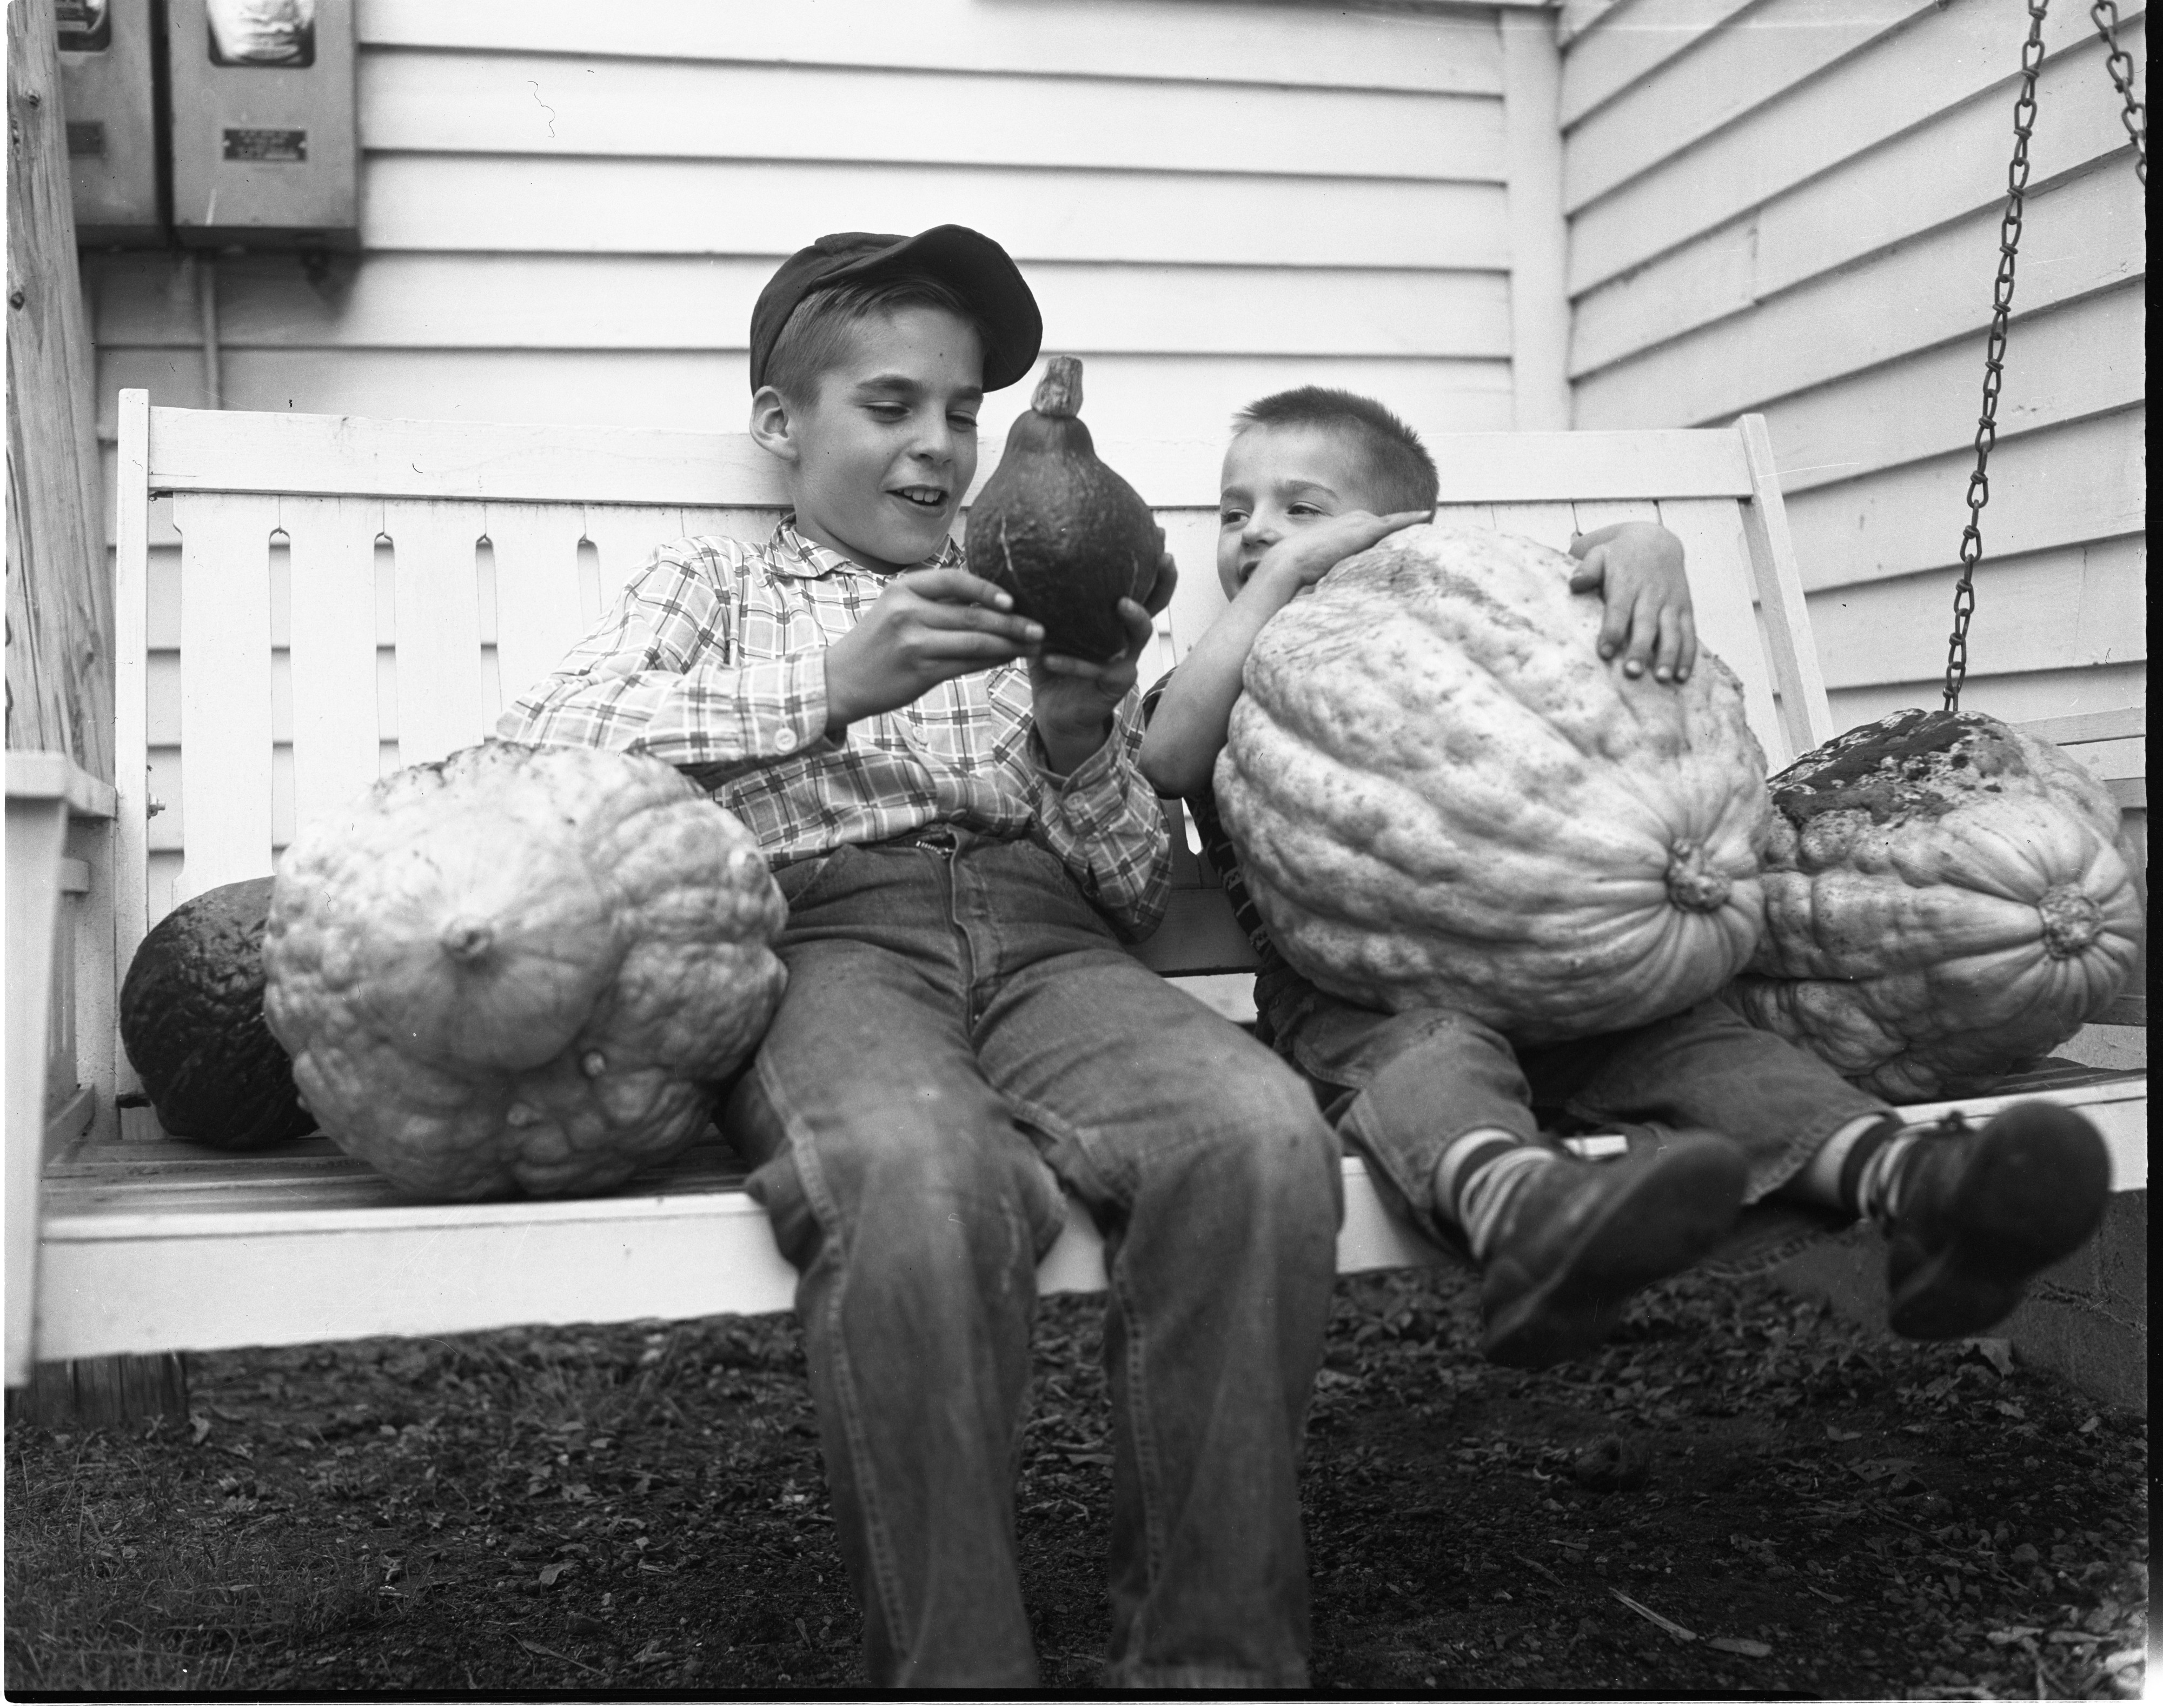 Don & Jack Beck With Giant Squash From Their Yard, October 1954 image